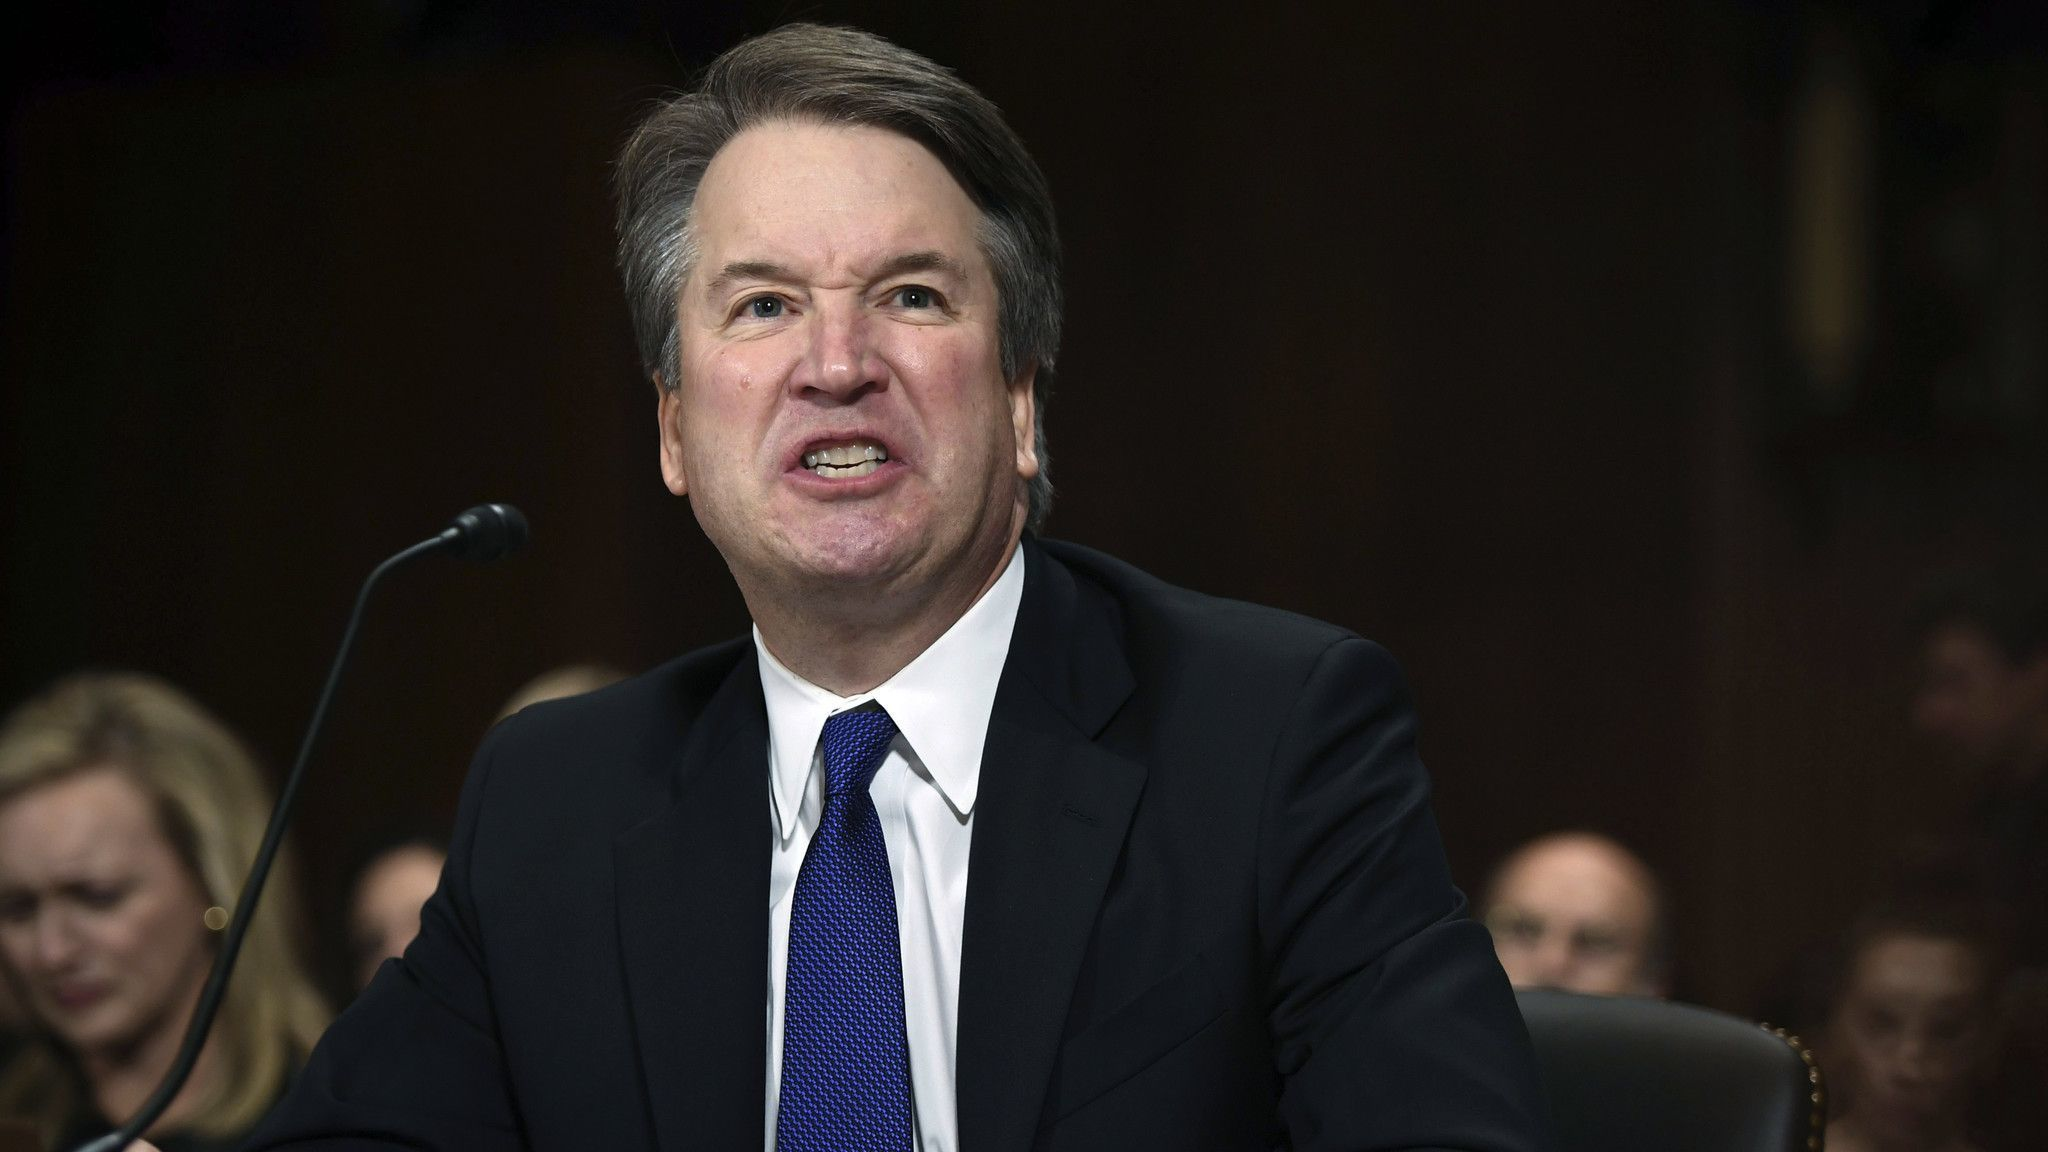 FILE - In this Thursday, Sept. 27, 2018 file photo, Supreme Court nominee Judge Brett Kavanaugh give